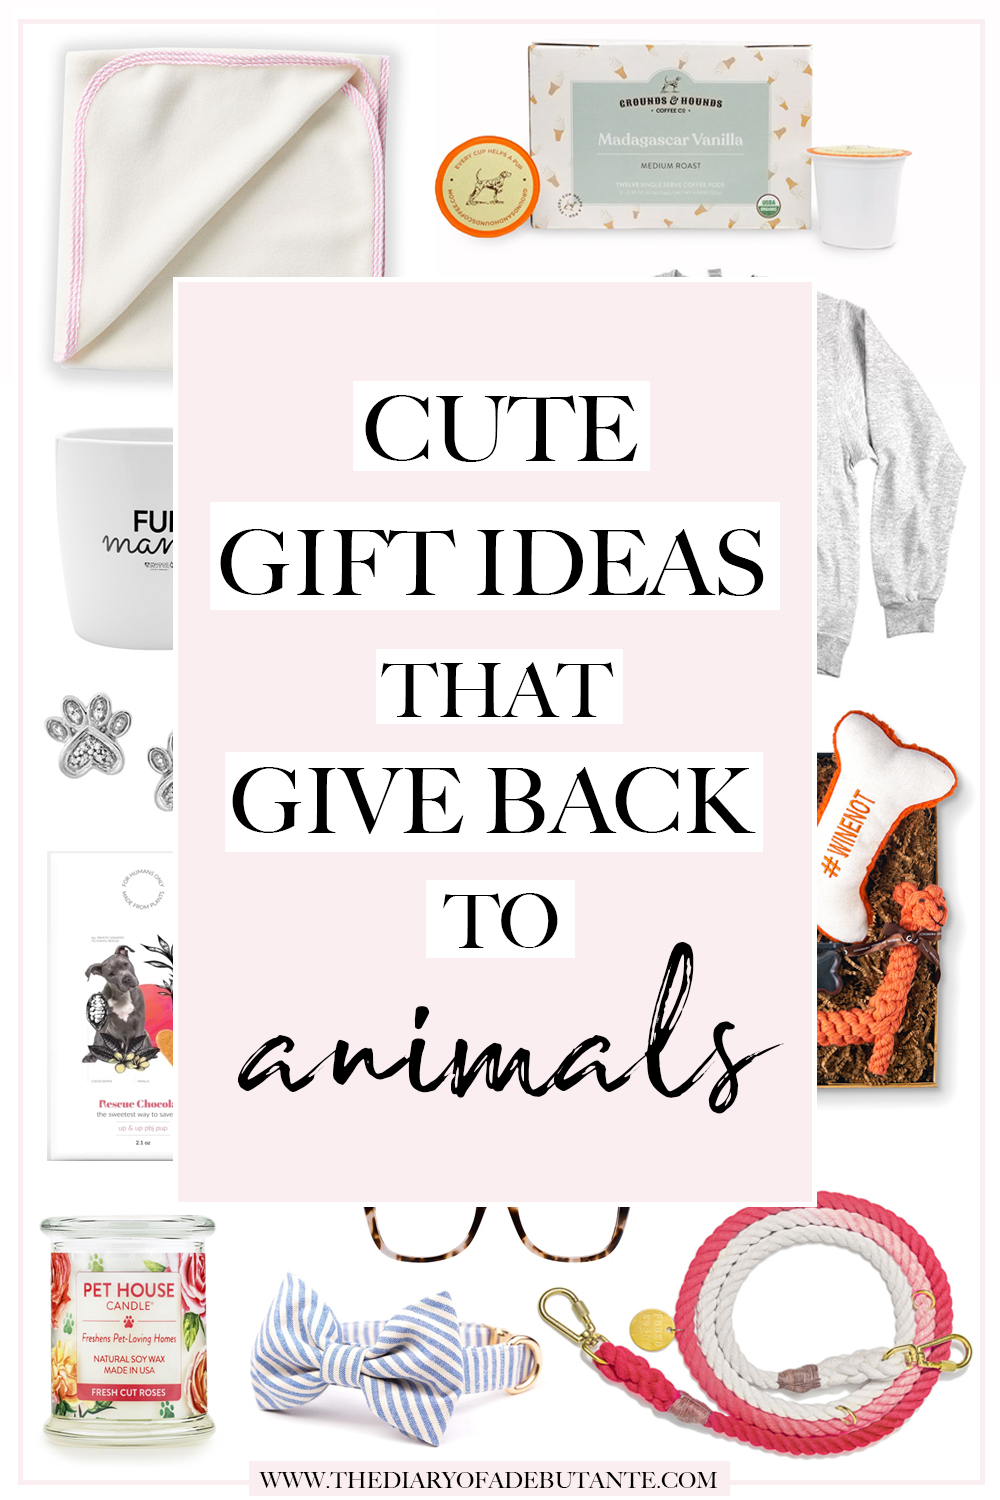 gifts that give back to animals, gifts that give back to animal charities, gifts that benefit animal charities, gift ideas that give back to animals, popular affordable fashion blogger Stephanie Ziajka, Diary of a Debutante